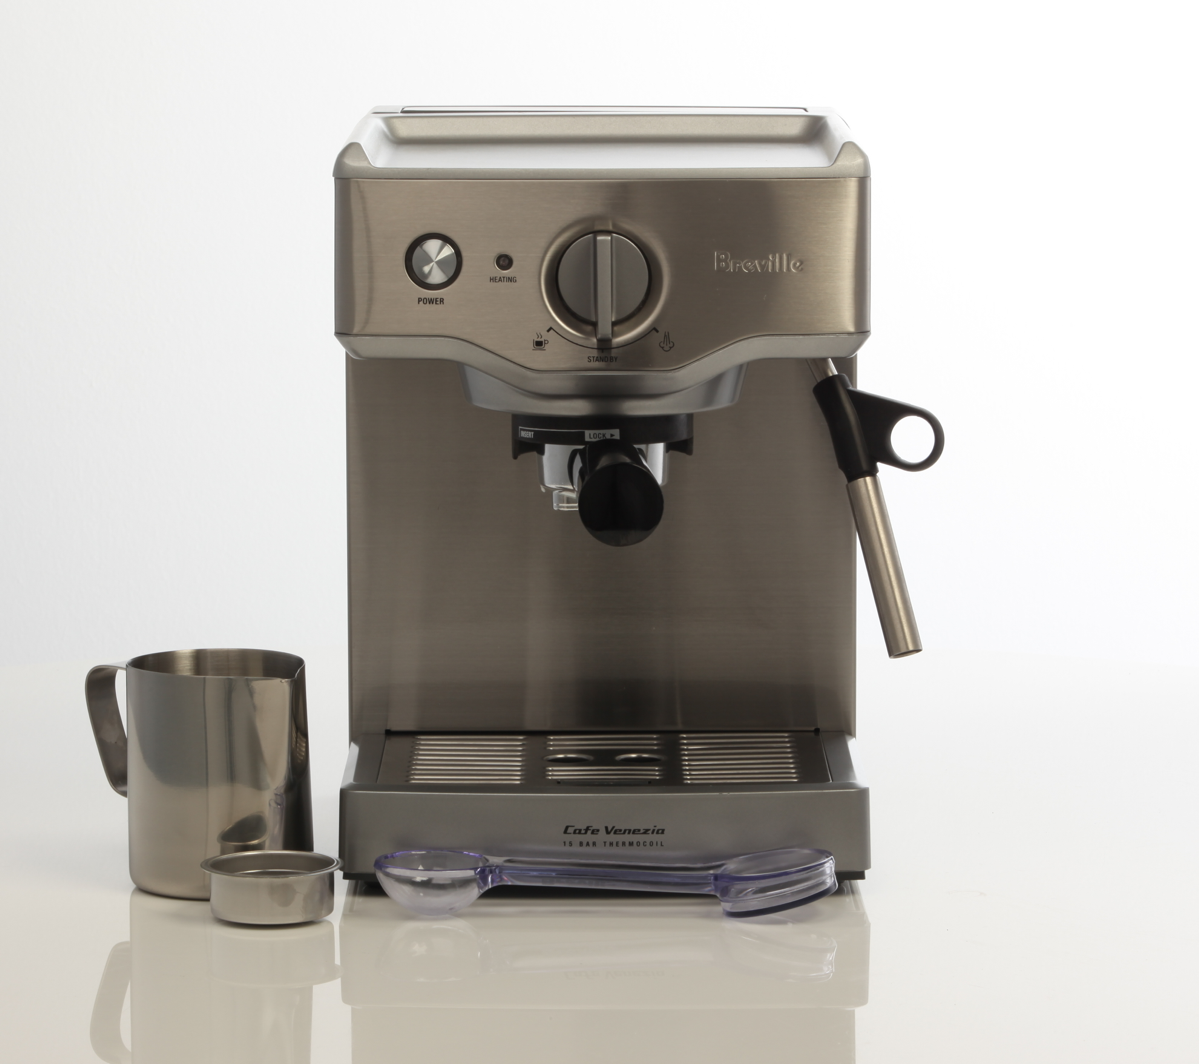 Breville Coffee Maker Gold Filter : Breville BES250BSS Compact Cafe Espresso Machine at The Good Guys